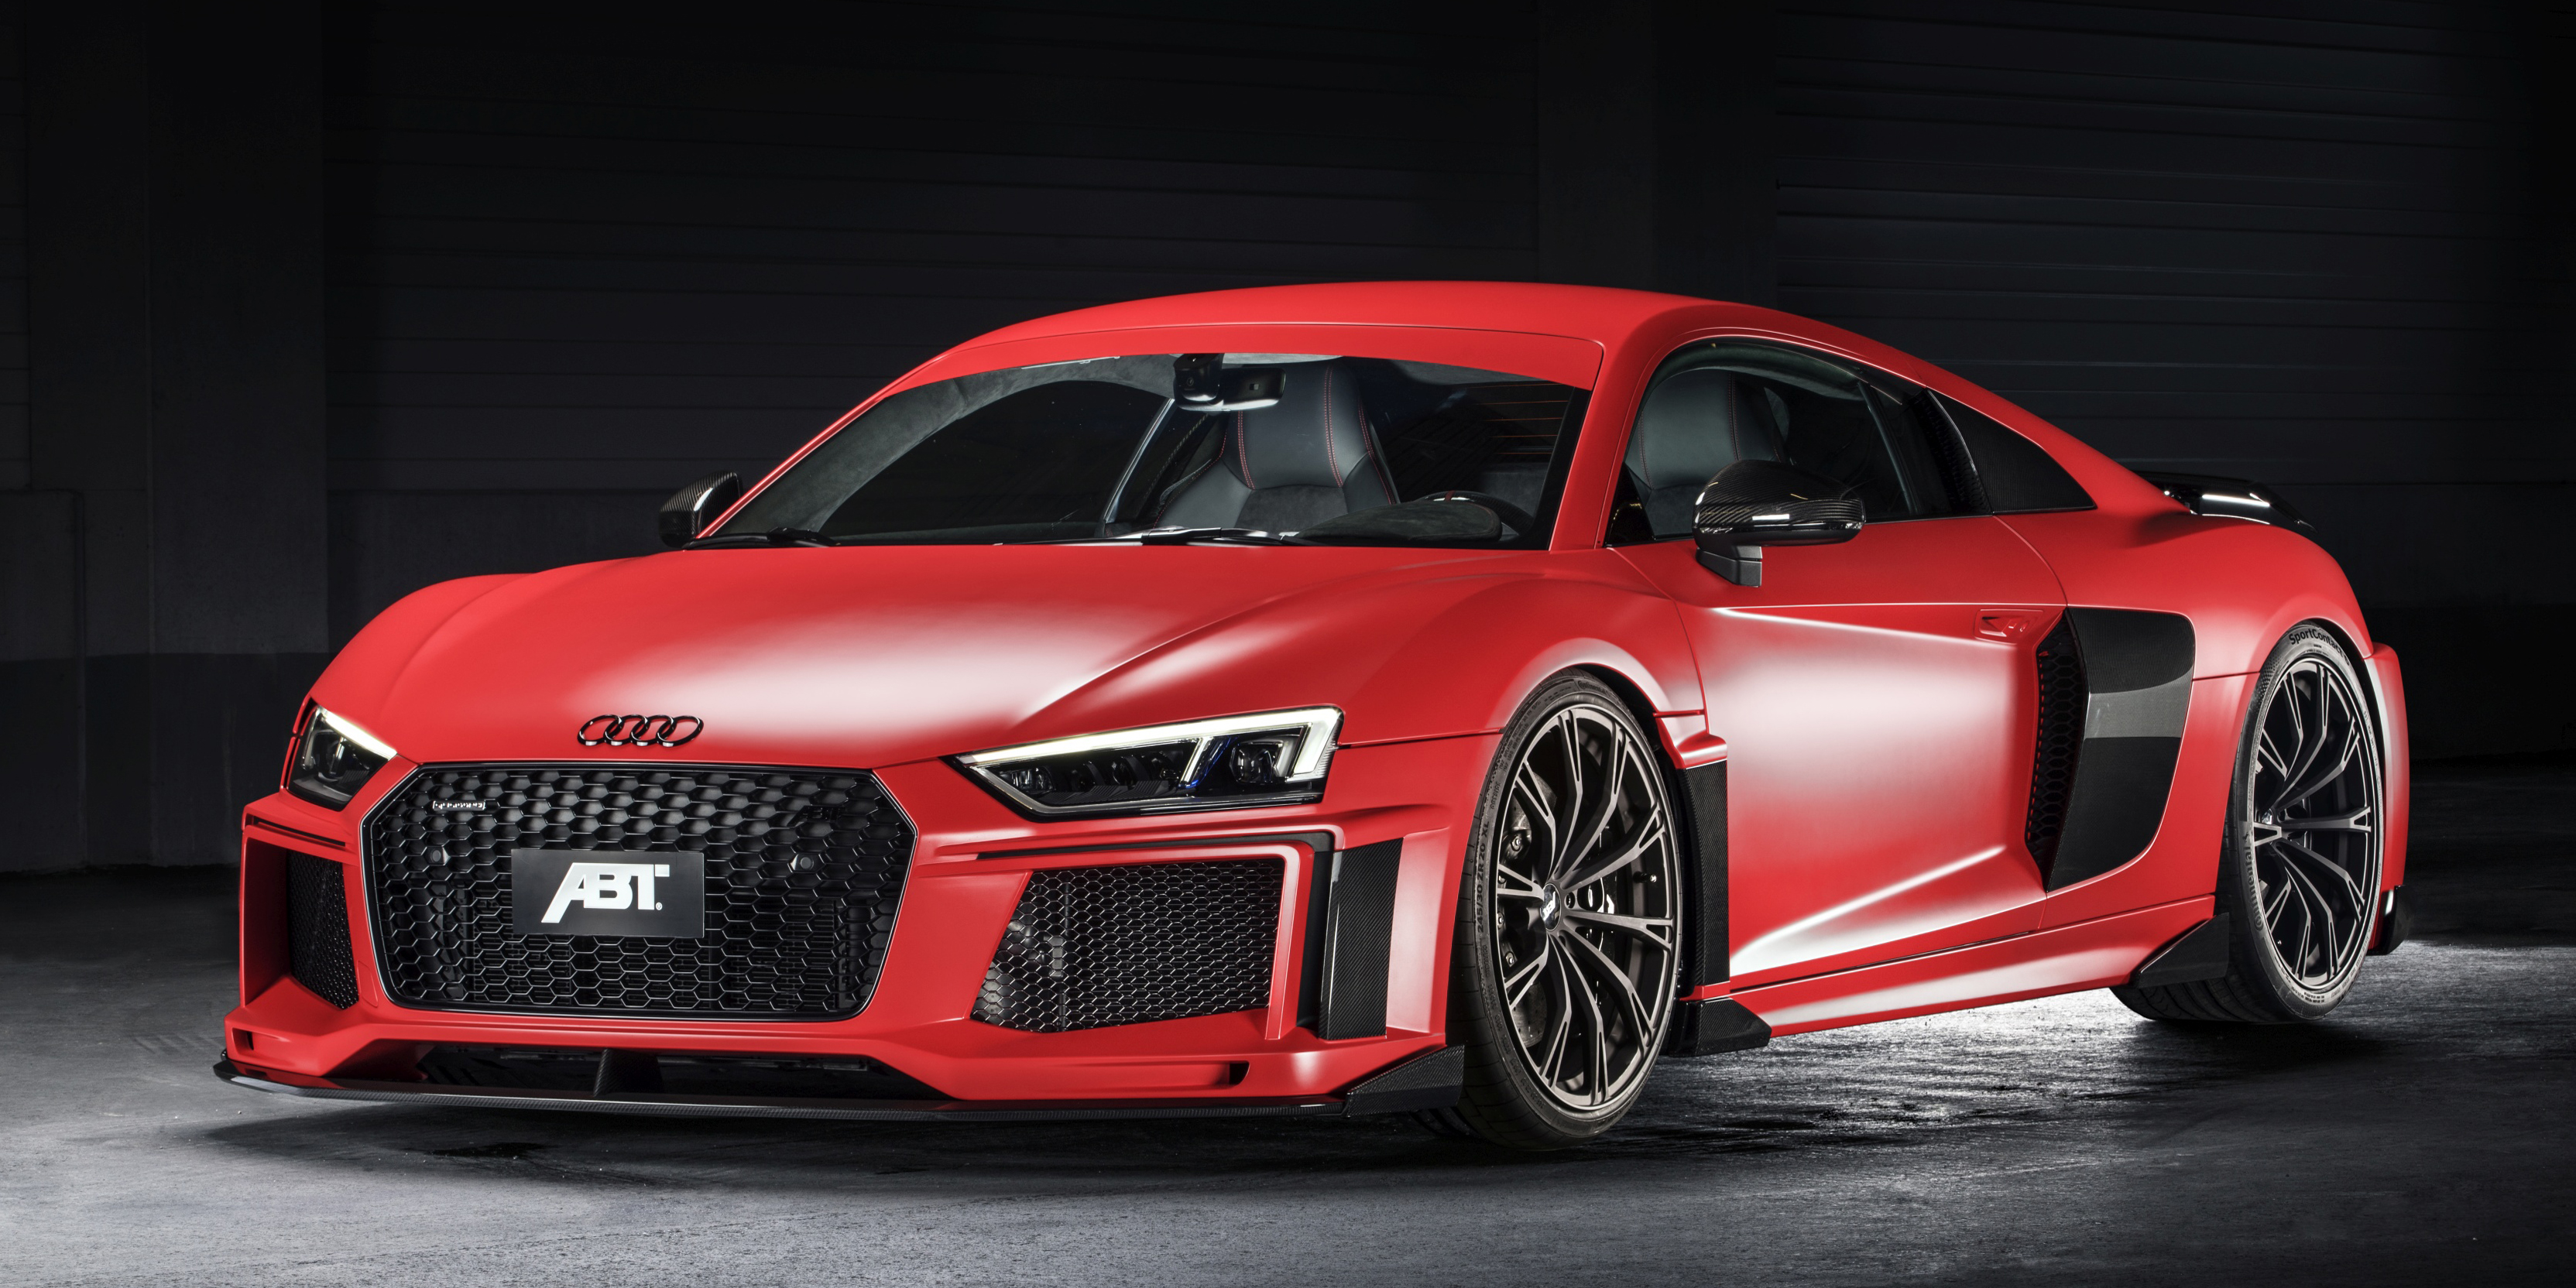 r8_3_4_front